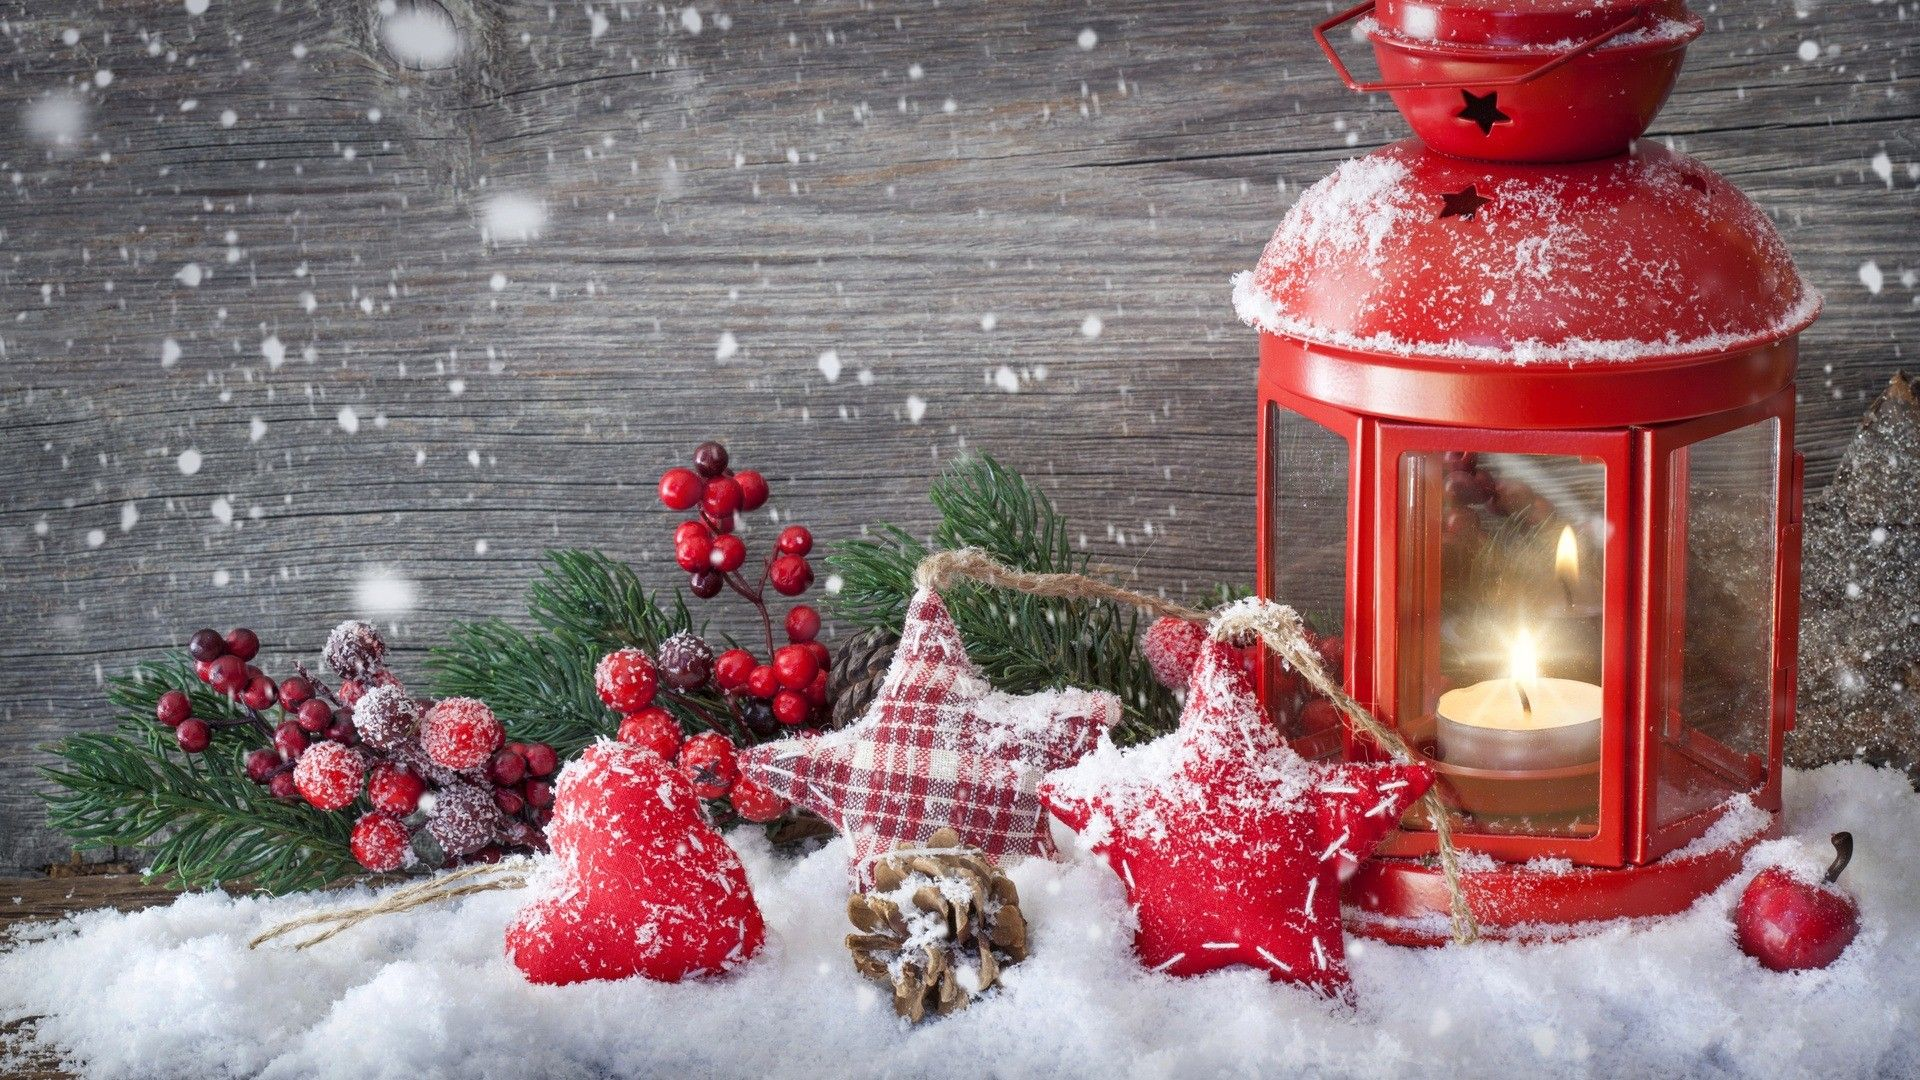 Christmas Snow Wallpapers Top Free Christmas Snow Backgrounds Wallpaperaccess